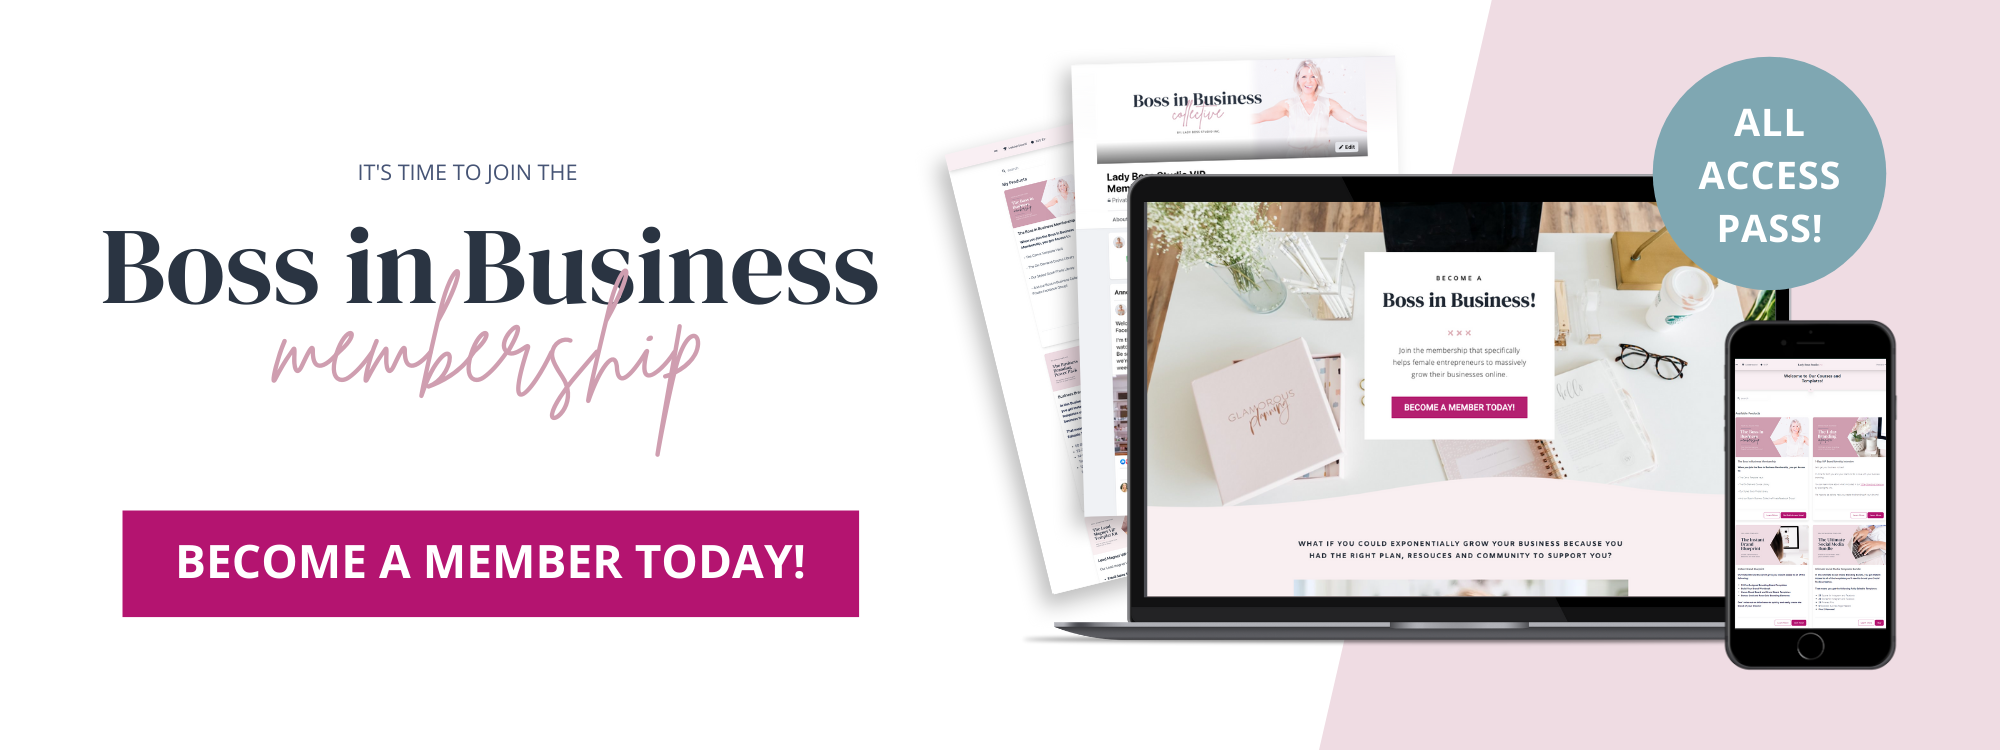 Join the Boss in Business Membership Today!